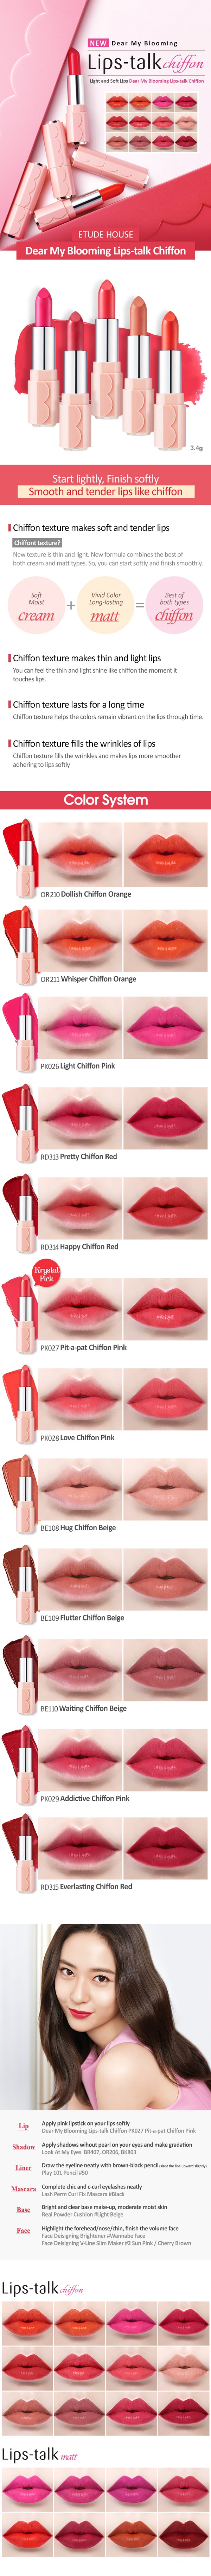 [Etude house]Dear Blooming Lips-Talk Chiffon #RD315 Chiffon Red 3.4g